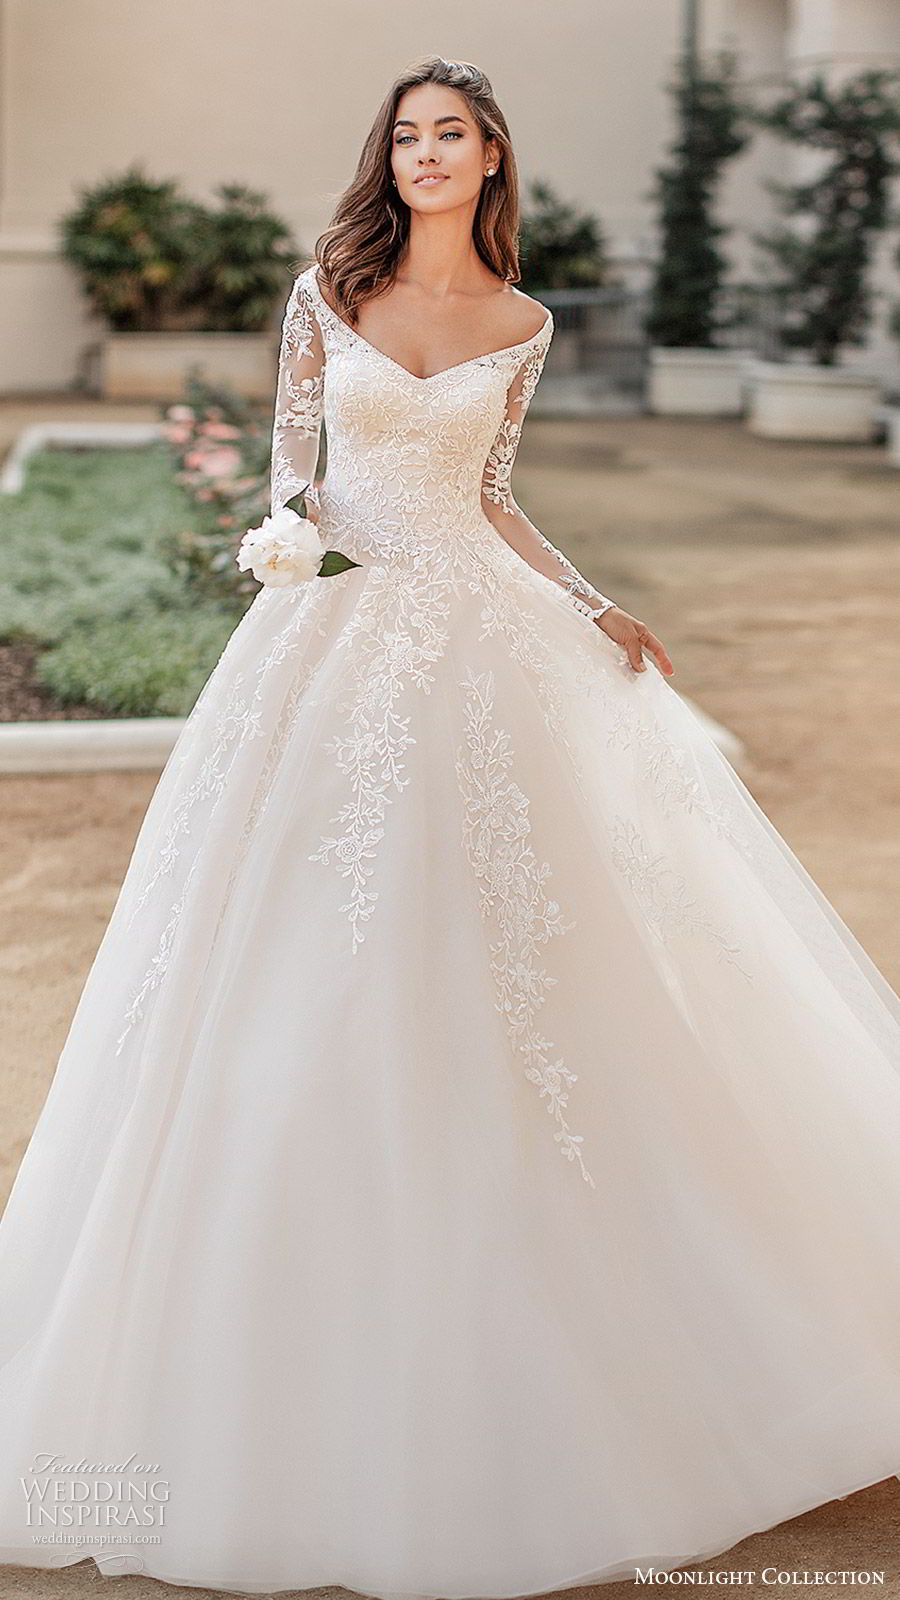 moonlight collection fall 2019 bridal illusion long sleeves off shoulder neckline fully embellished lace a line ball gown wedding dress (7) elegant princess romantic chapel train mv